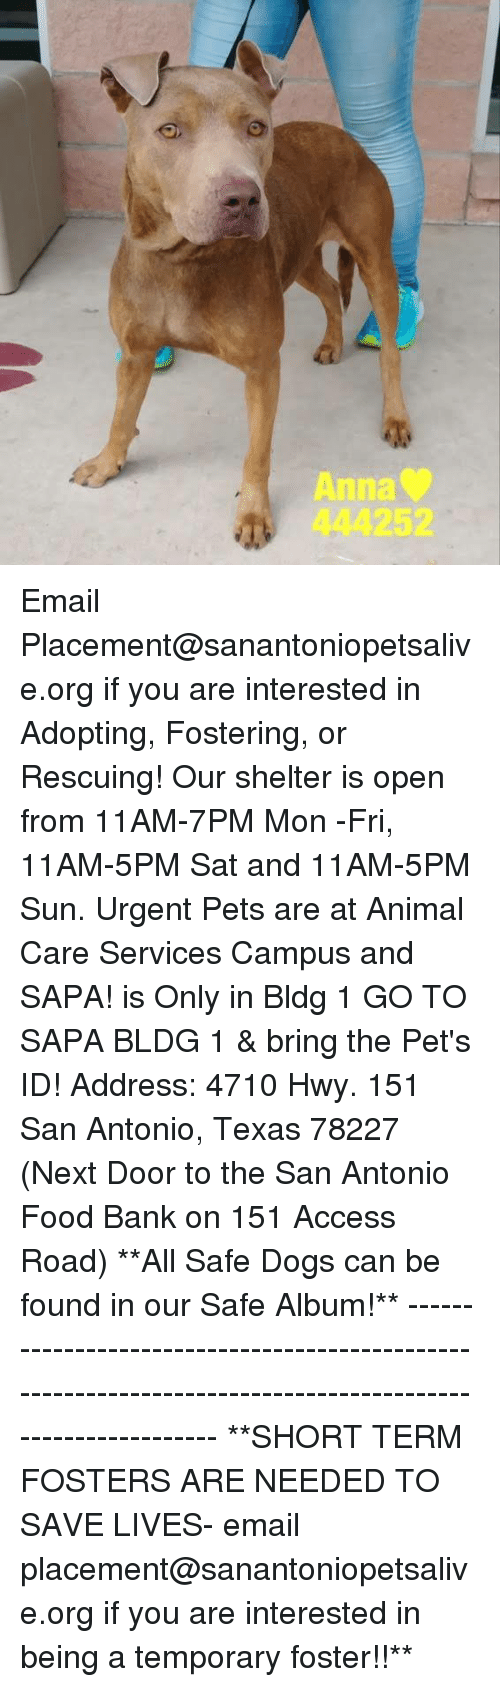 Anna, Dogs, and Food: Anna  444252 Email Placement@sanantoniopetsalive.org if you are interested in Adopting, Fostering, or Rescuing!  Our shelter is open from 11AM-7PM Mon -Fri, 11AM-5PM Sat and 11AM-5PM Sun.  Urgent Pets are at Animal Care Services Campus and SAPA! is Only in Bldg 1 GO TO SAPA BLDG 1 & bring the Pet's ID! Address: 4710 Hwy. 151 San Antonio, Texas 78227 (Next Door to the San Antonio Food Bank on 151 Access Road)  **All Safe Dogs can be found in our Safe Album!** ---------------------------------------------------------------------------------------------------------- **SHORT TERM FOSTERS ARE NEEDED TO SAVE LIVES- email placement@sanantoniopetsalive.org if you are interested in being a temporary foster!!**